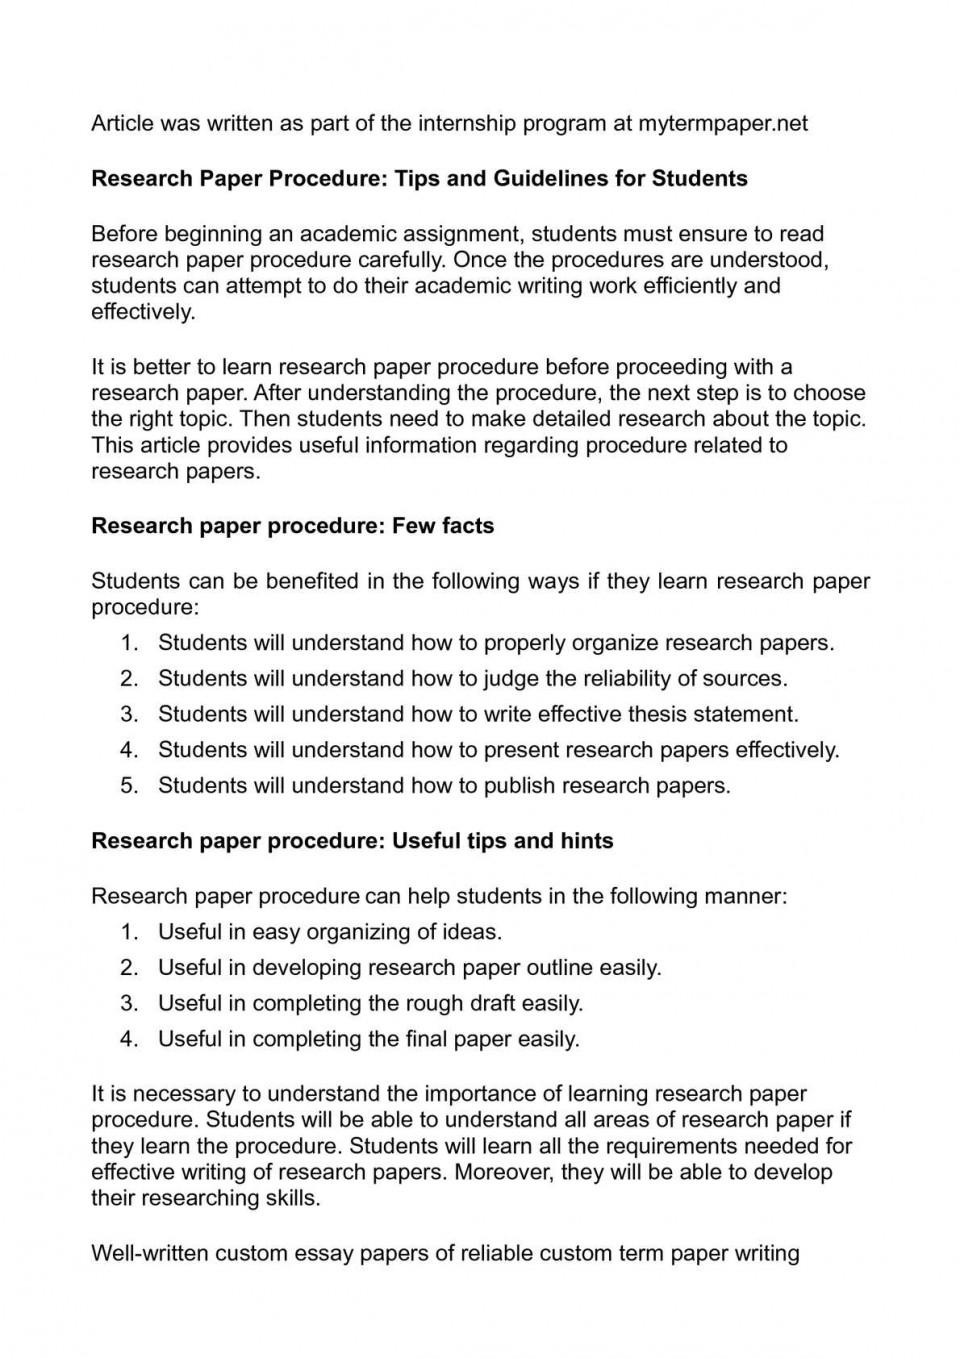 008 Developing Research Paper Outline Singular A 960